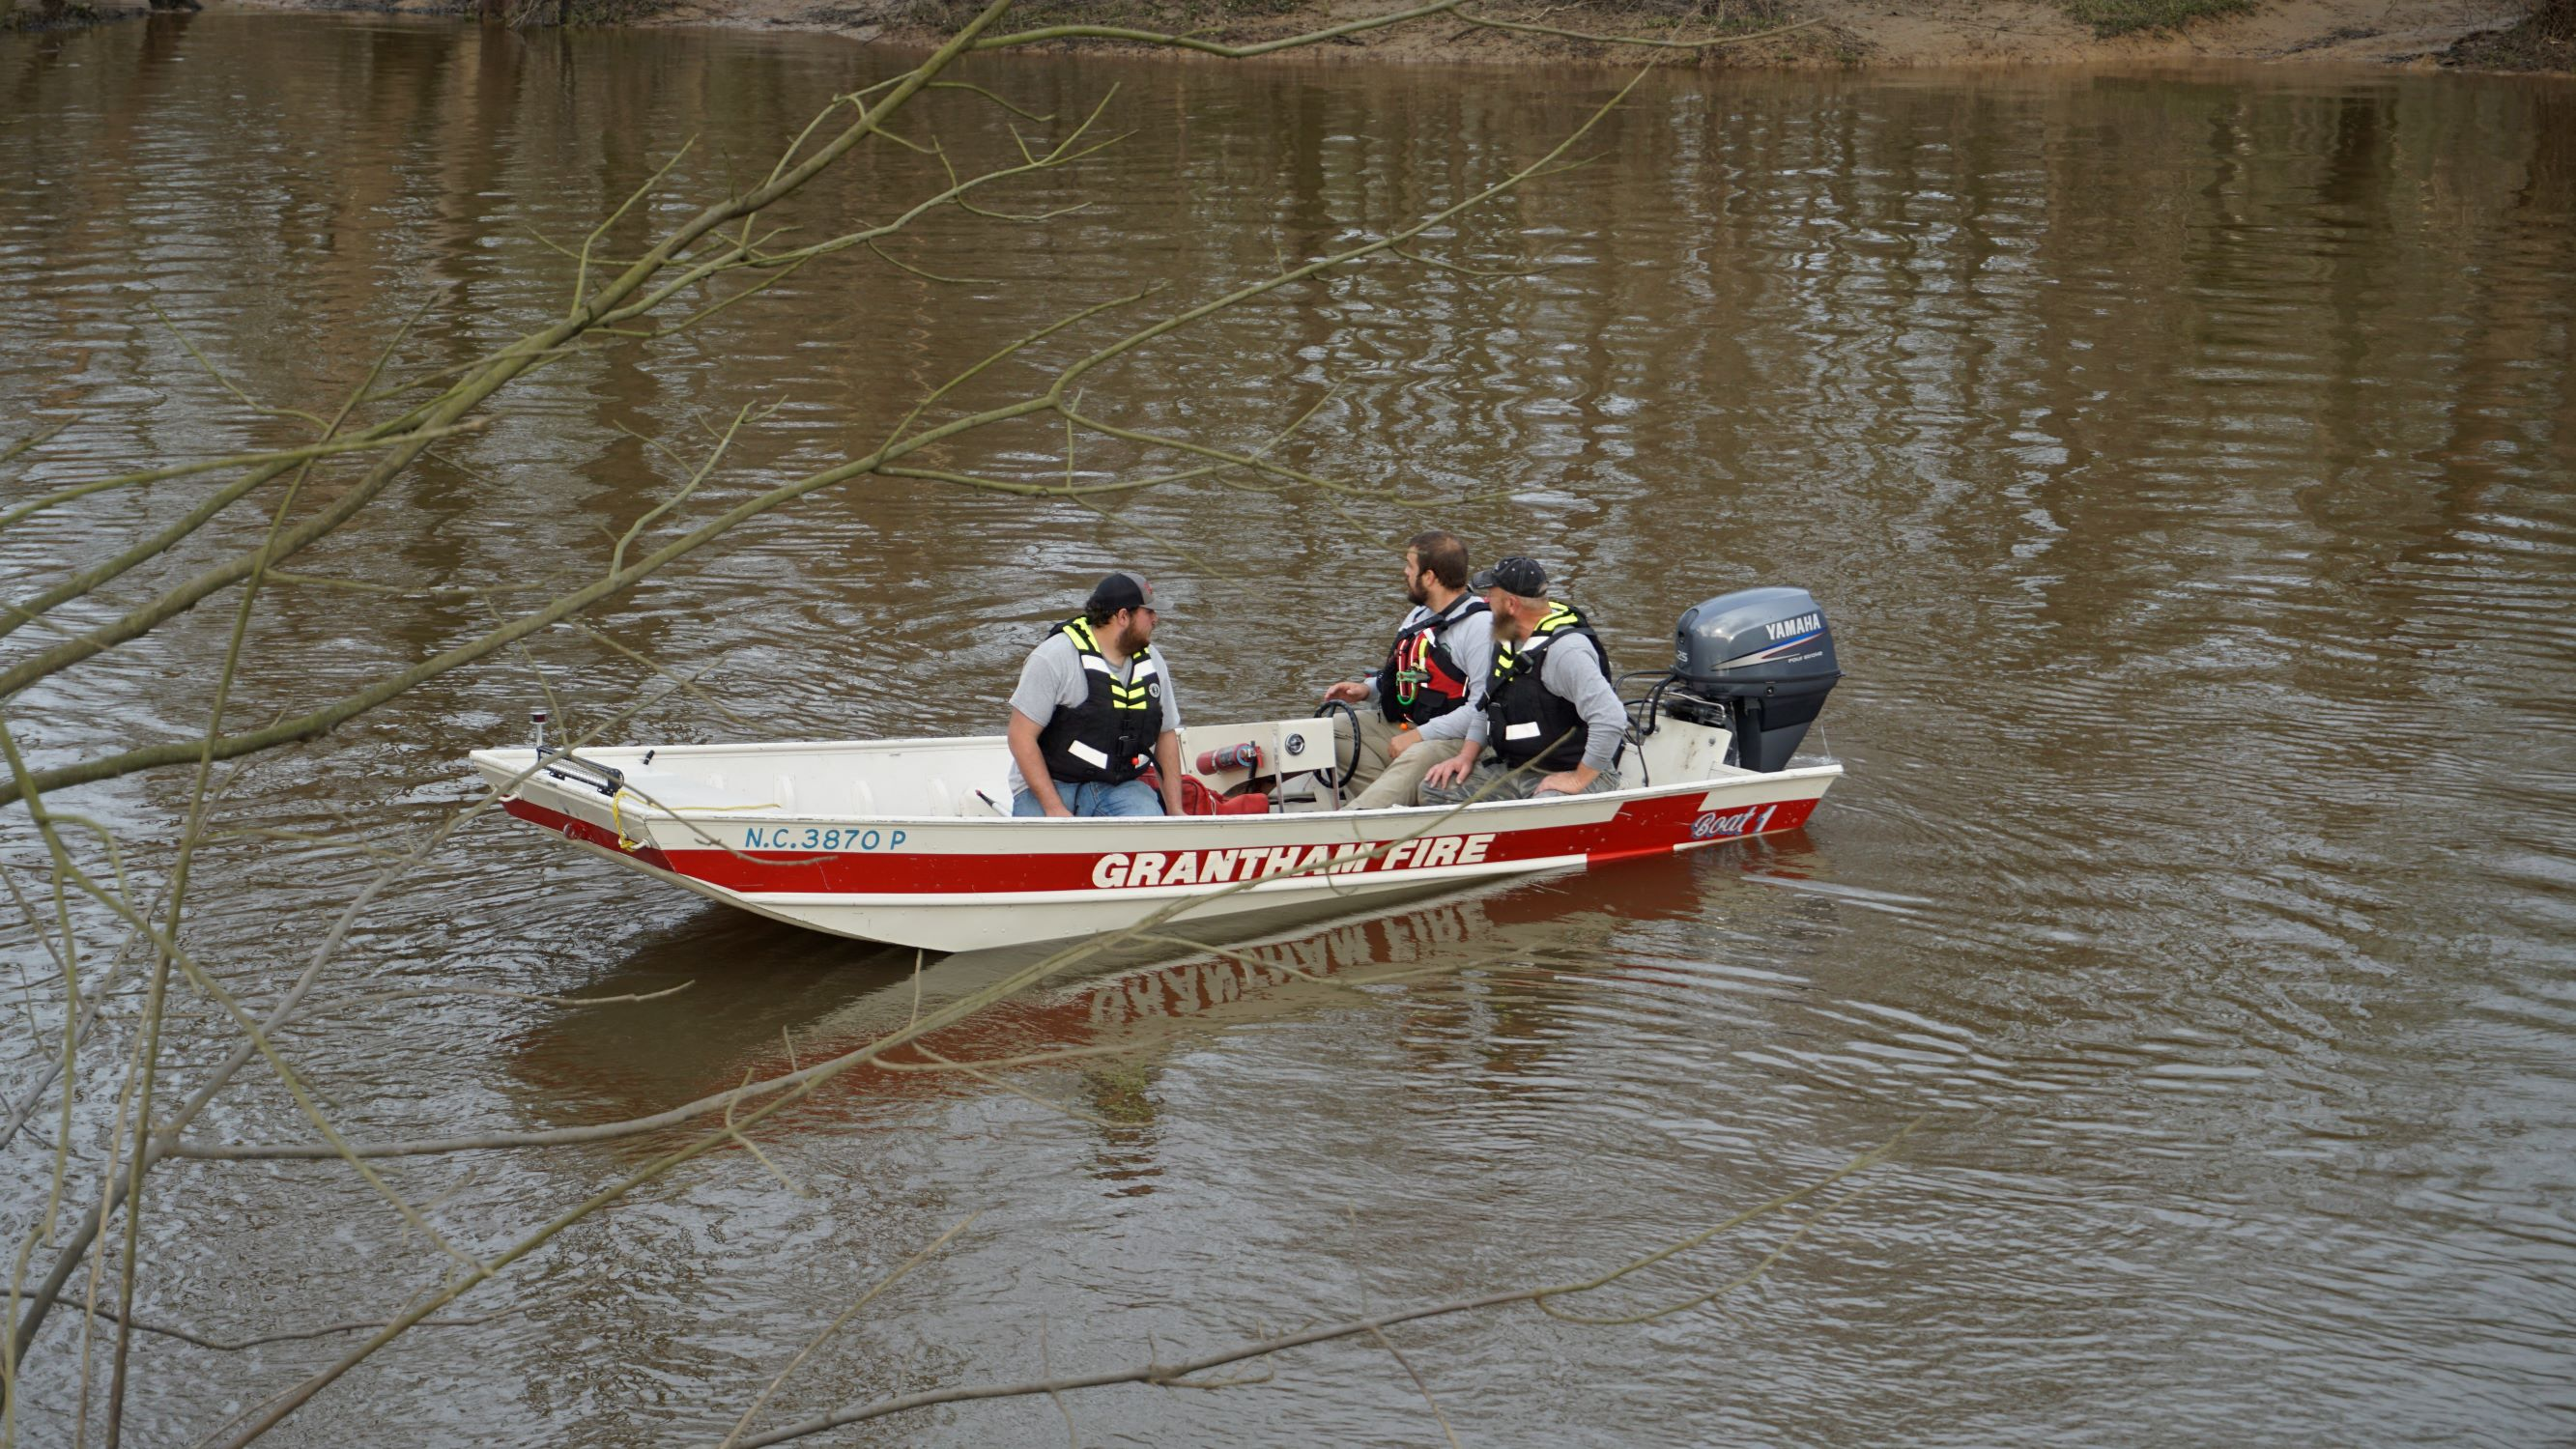 Search For Missing Father & Son Resumes Sunday Following Stoppage For Weather